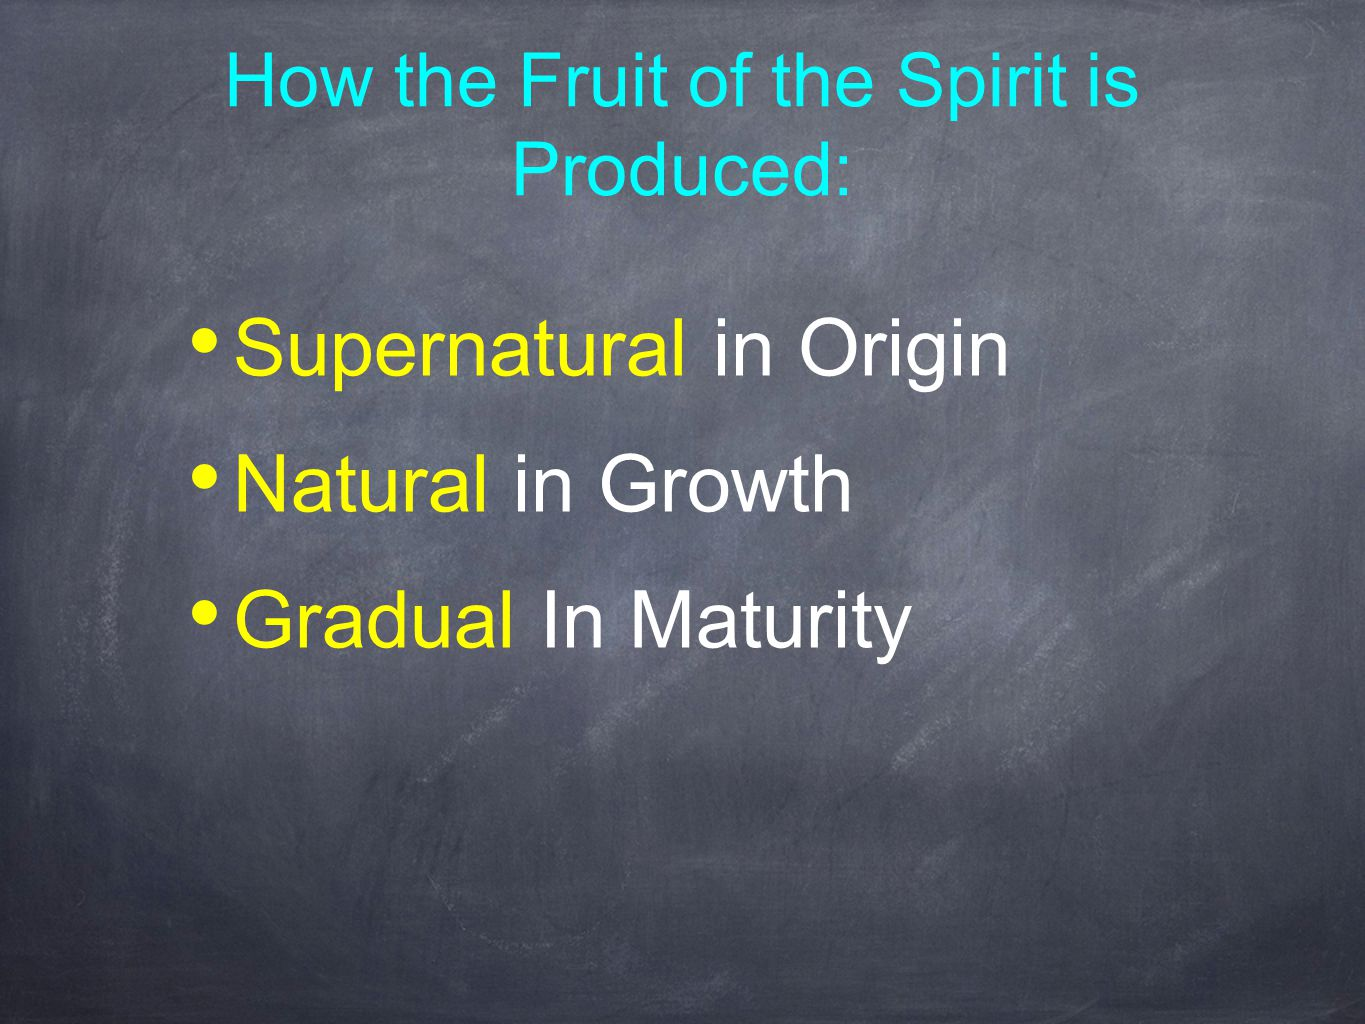 How the Fruit of the Spirit is Produced: Supernatural in Origin Natural in Growth Gradual In Maturity